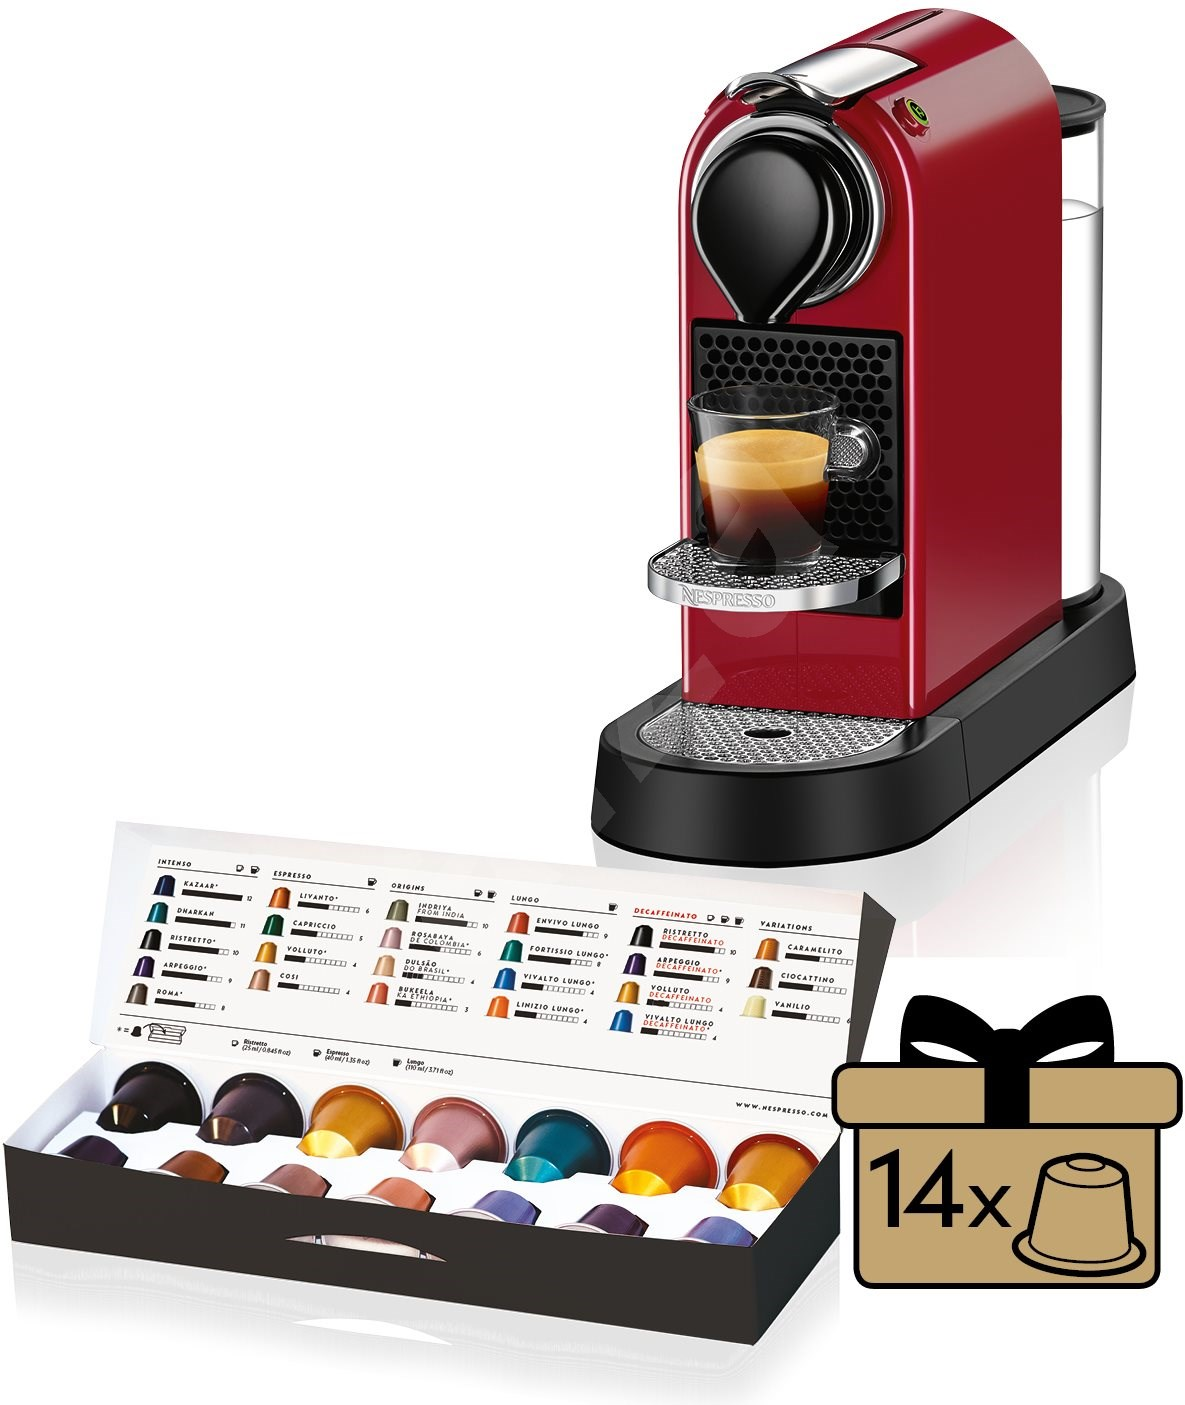 nespresso krups citiz xn740510 capsule coffee machine. Black Bedroom Furniture Sets. Home Design Ideas